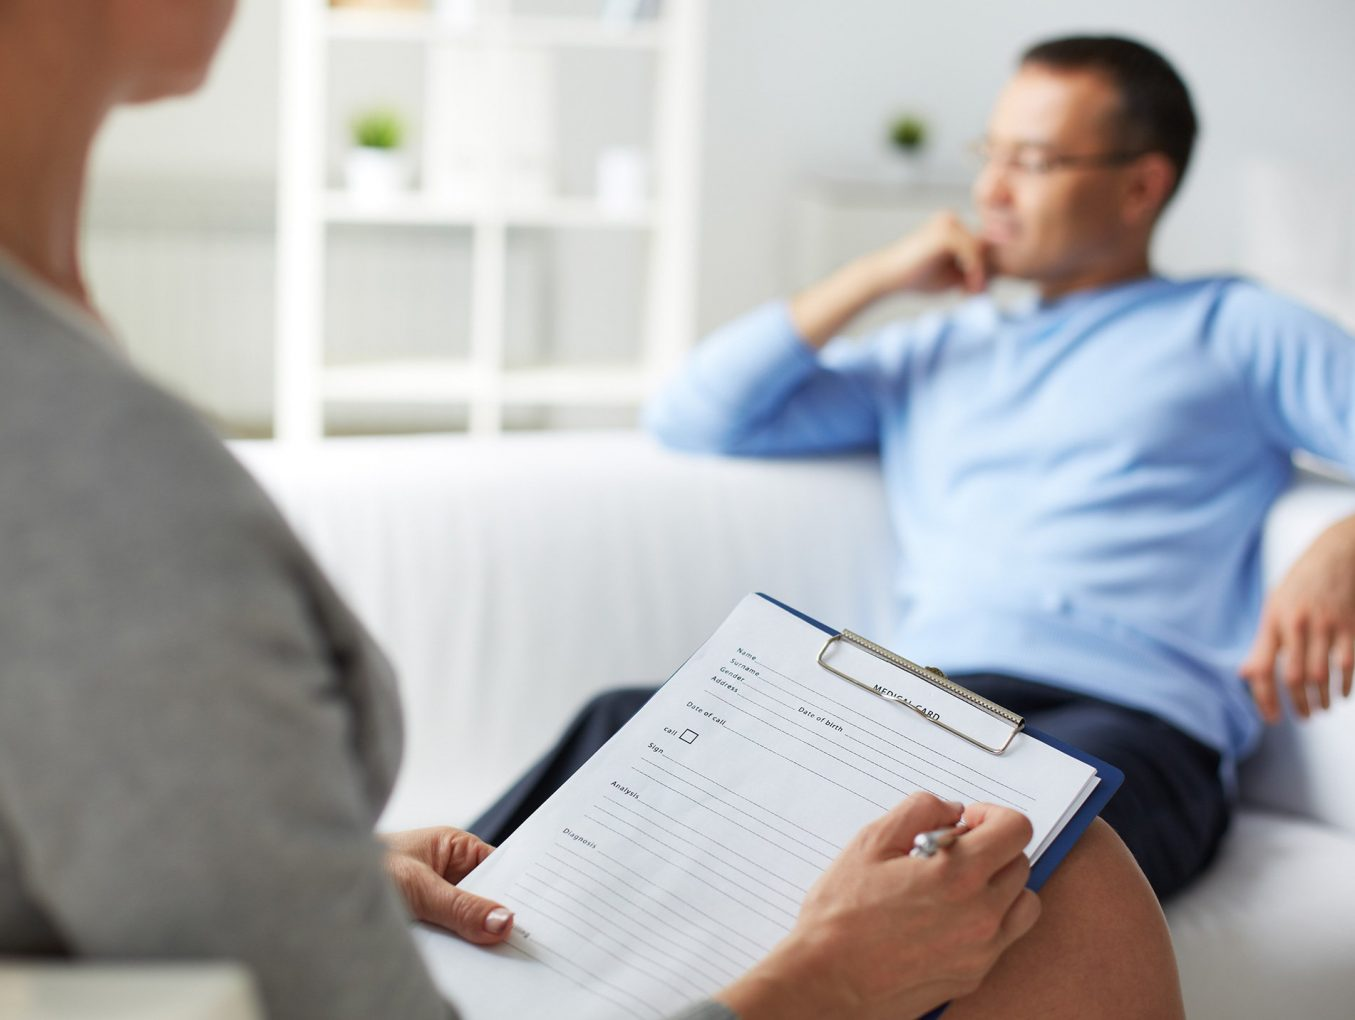 Stop Drinking After Visiting a Hypnotherapy Session